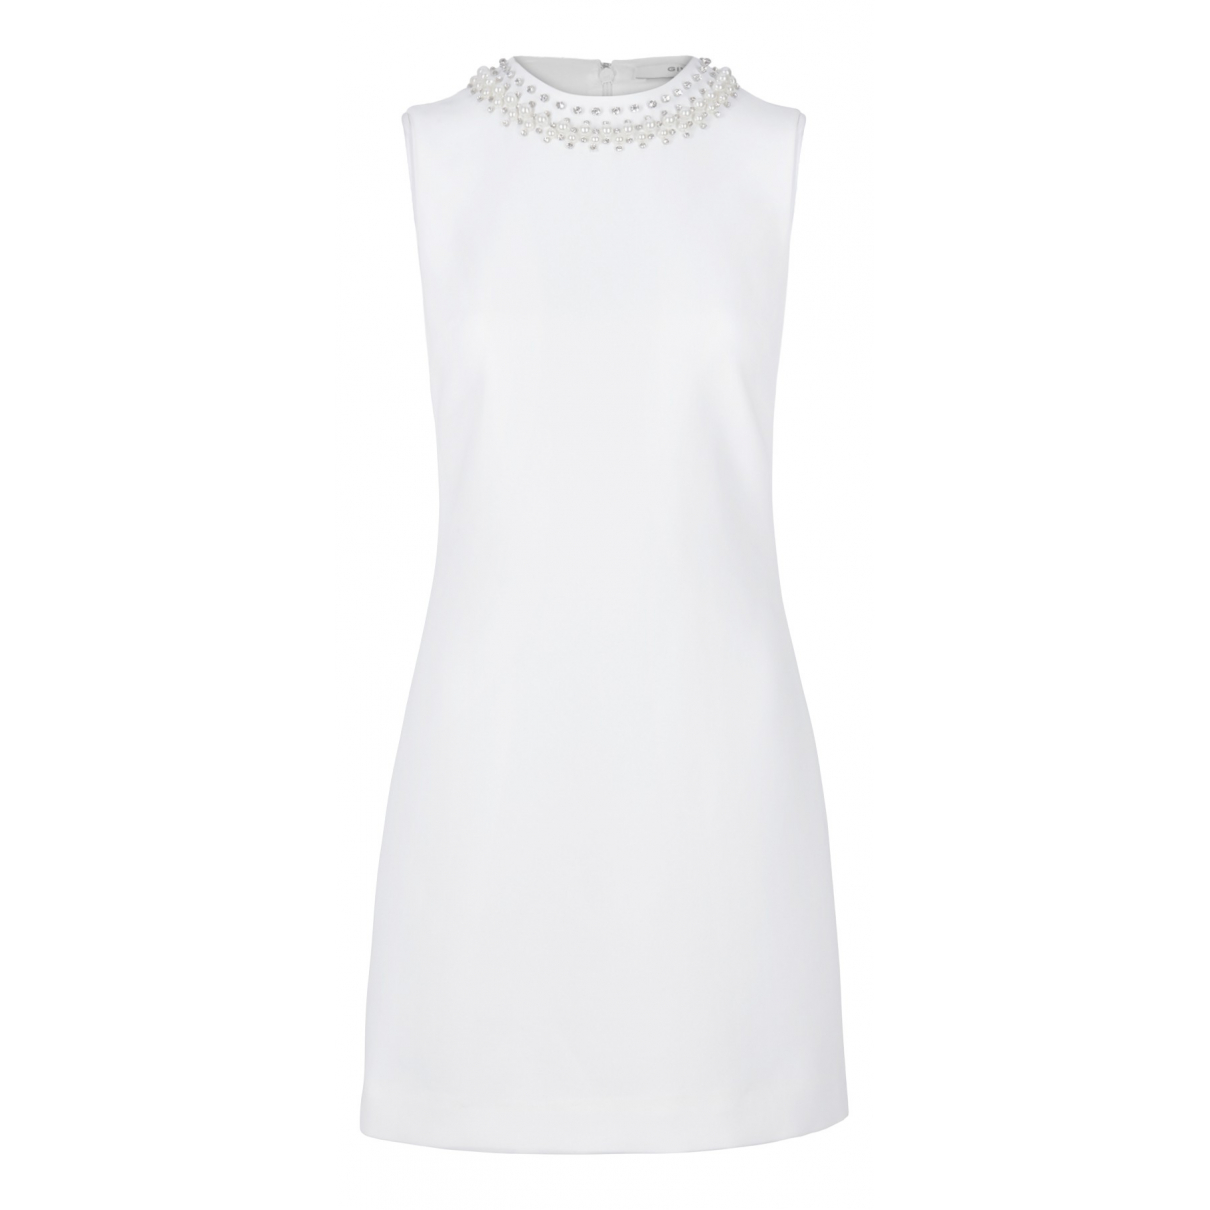 Givenchy N White dress for Women 8 UK